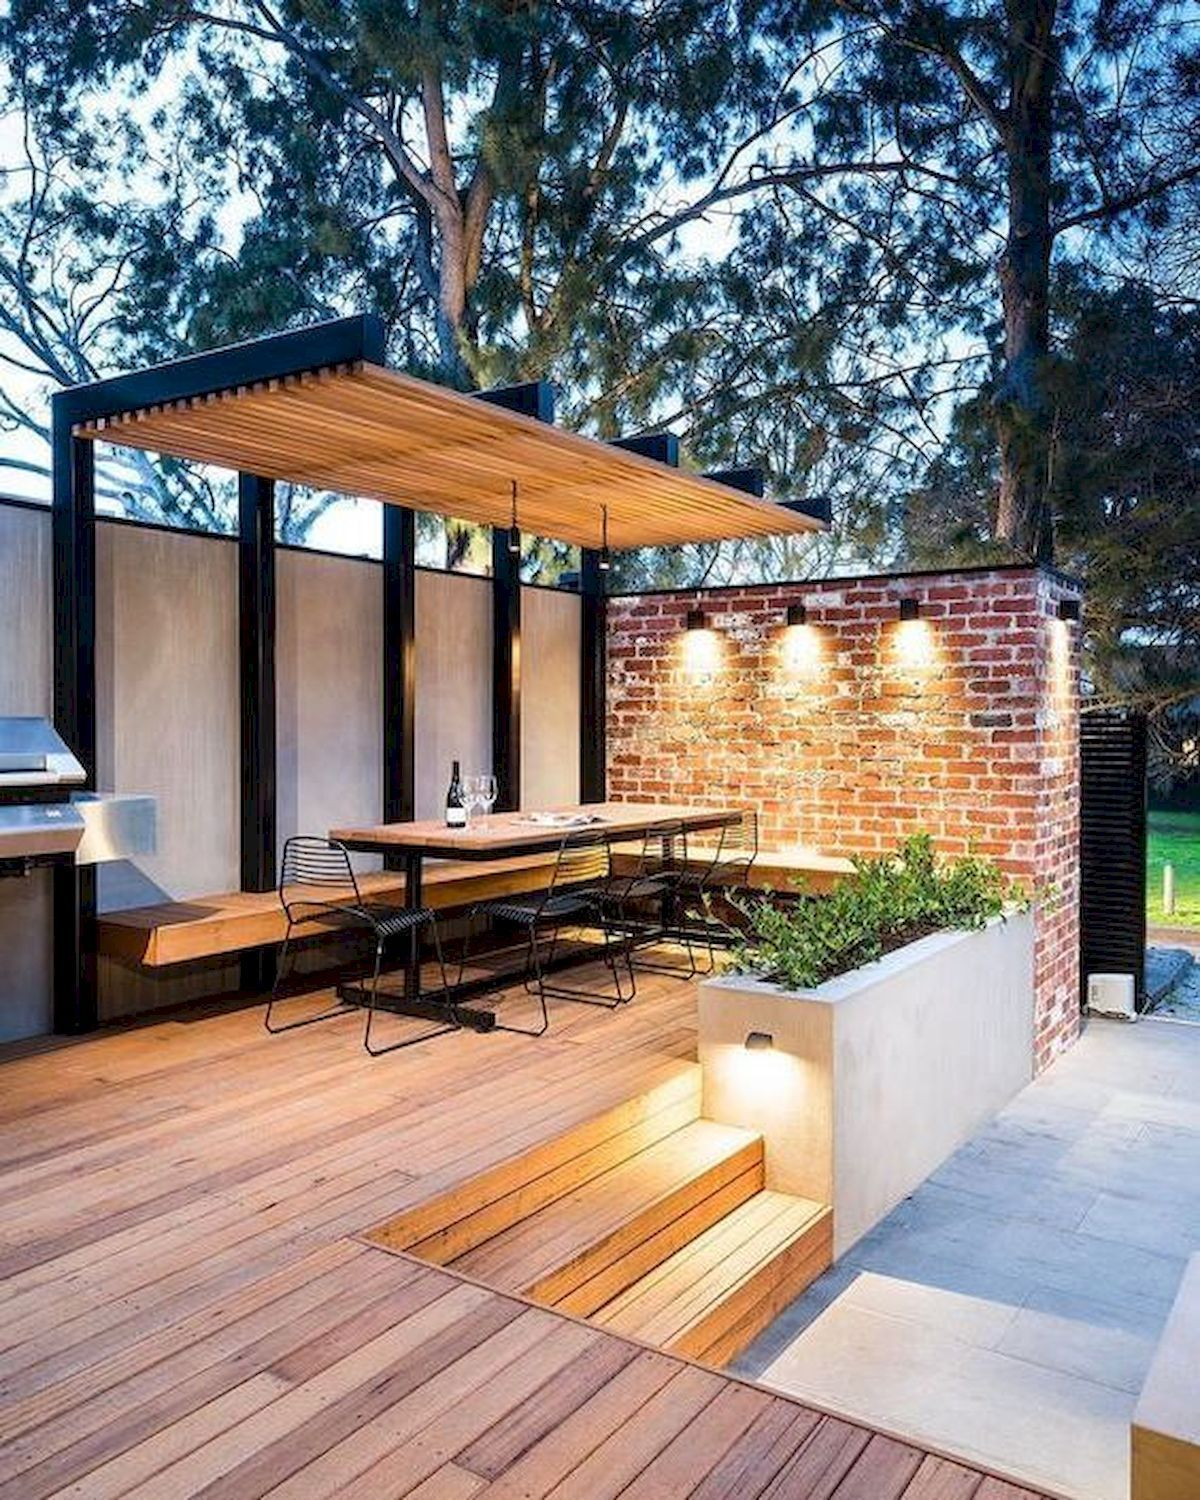 Small Pergola Kit Australia: Roof On Your Choice To Go In 2020